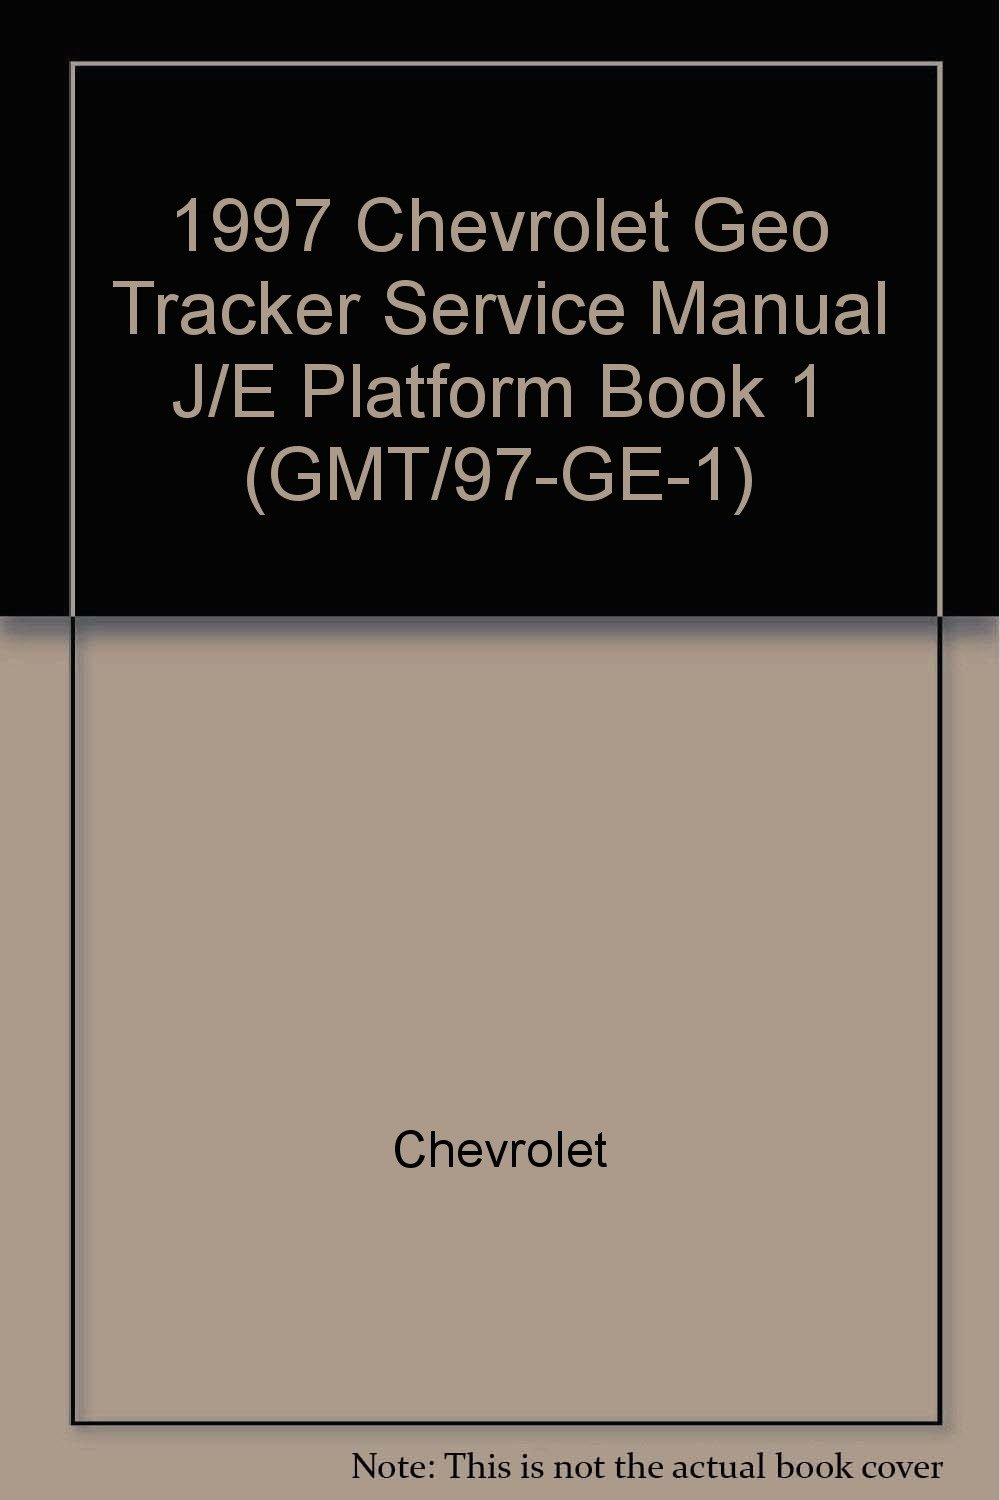 1997 Chevrolet Geo Tracker Service Manual J/E Platform Book 1  (GMT/97-GE-1): Chevrolet: Amazon.com: Books